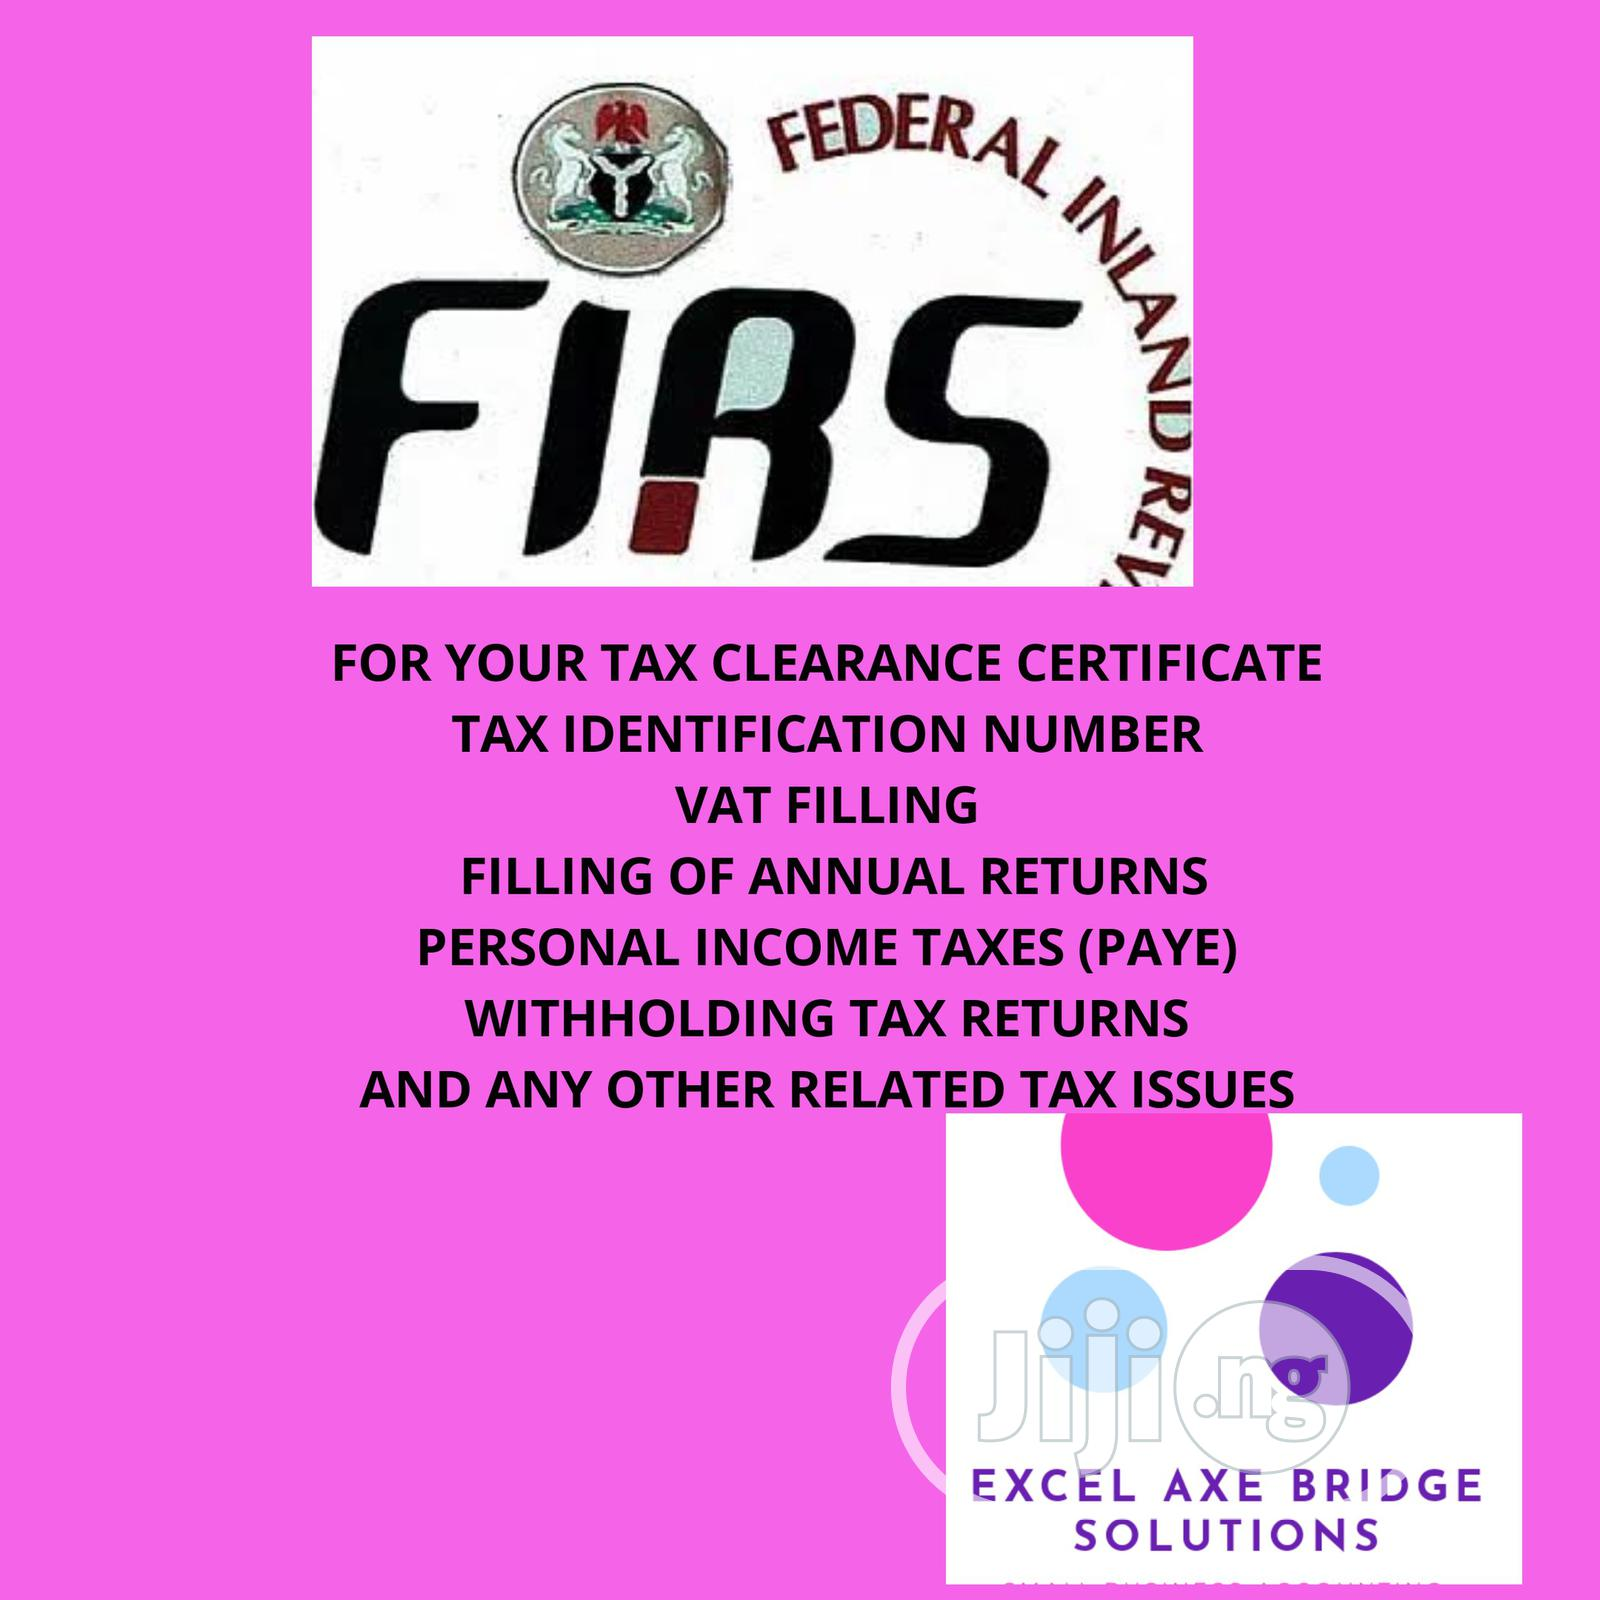 Tax Clearance Certificate, Annual Returns, Tin Number, PAYE